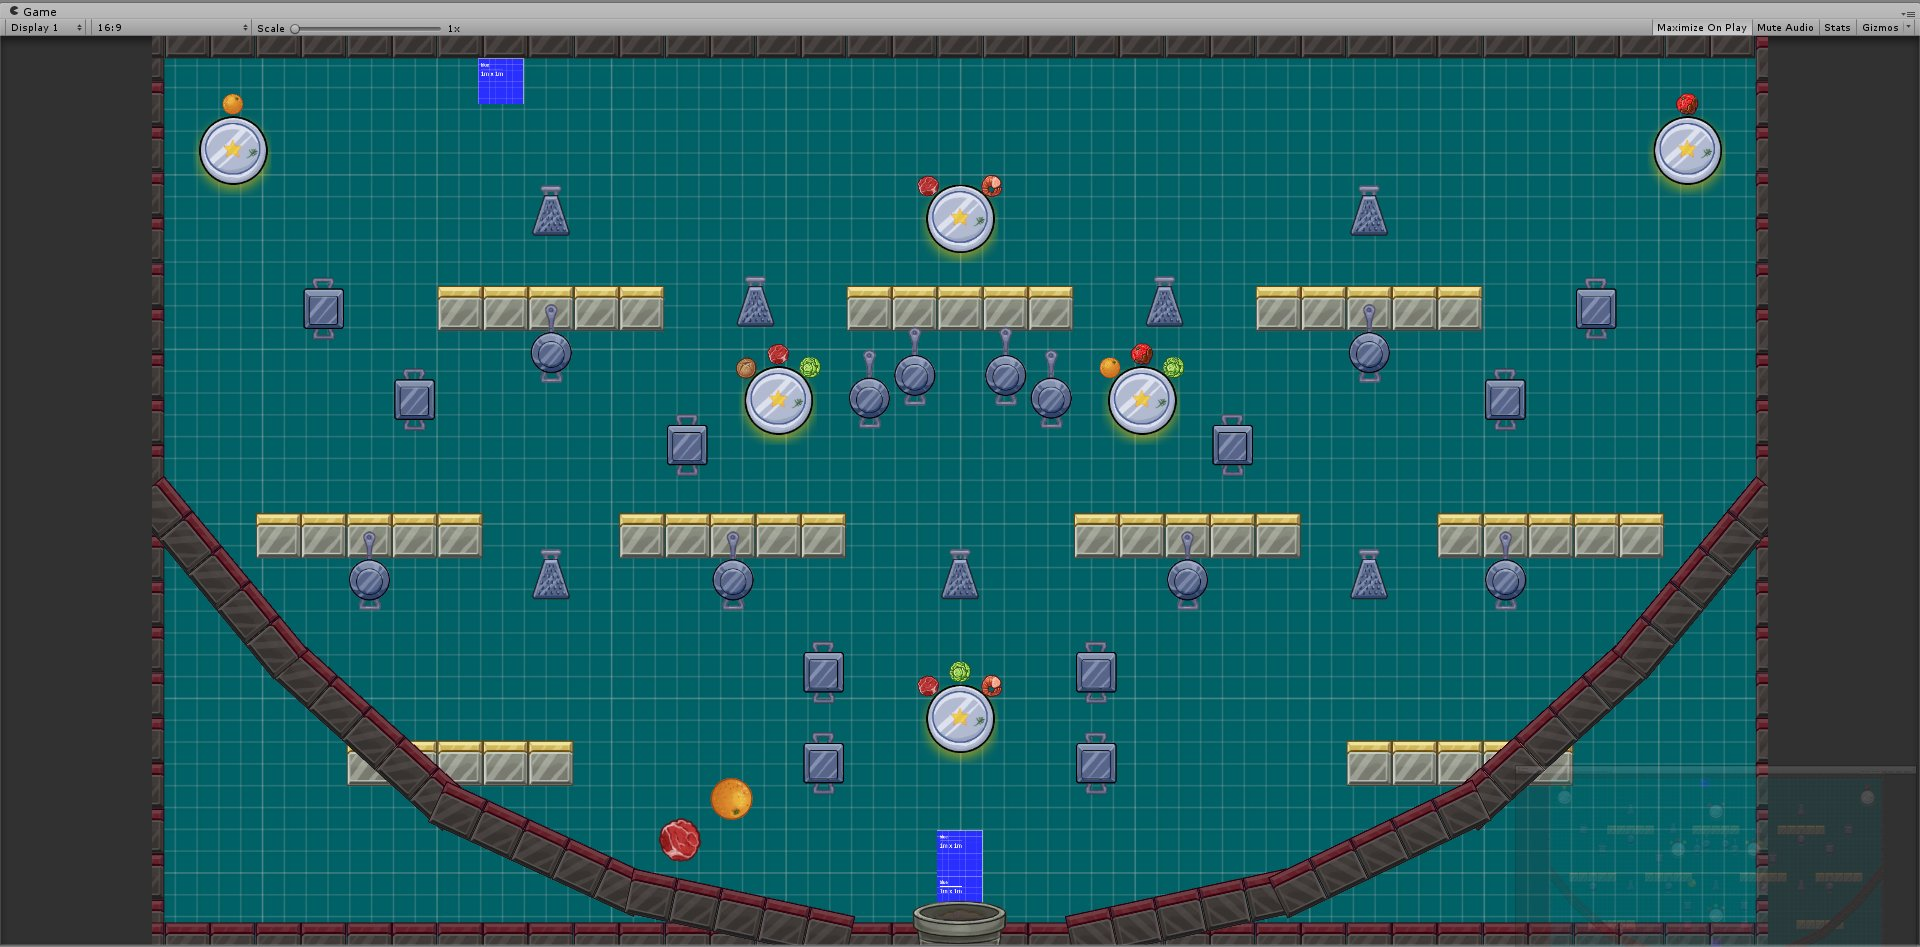 First level is designed. Just plugin in art and UI. Don't let the food go to waste! #tojam #TOJam12 https://t.co/JNIwaUjdnt